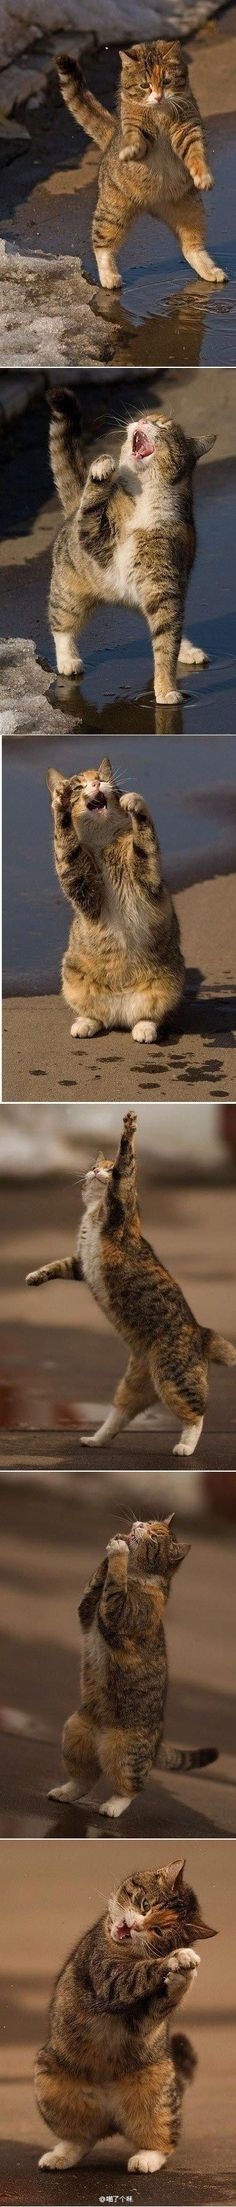 Crazy Cats Meme unlike Cute Animals Cartoon Fox per Easy Cute Baby Animals To Draw Step By Step Cool Cats, I Love Cats, Crazy Cats, Cute Kittens, Cats And Kittens, Animals And Pets, Funny Animals, Cute Animals, Baby Animals